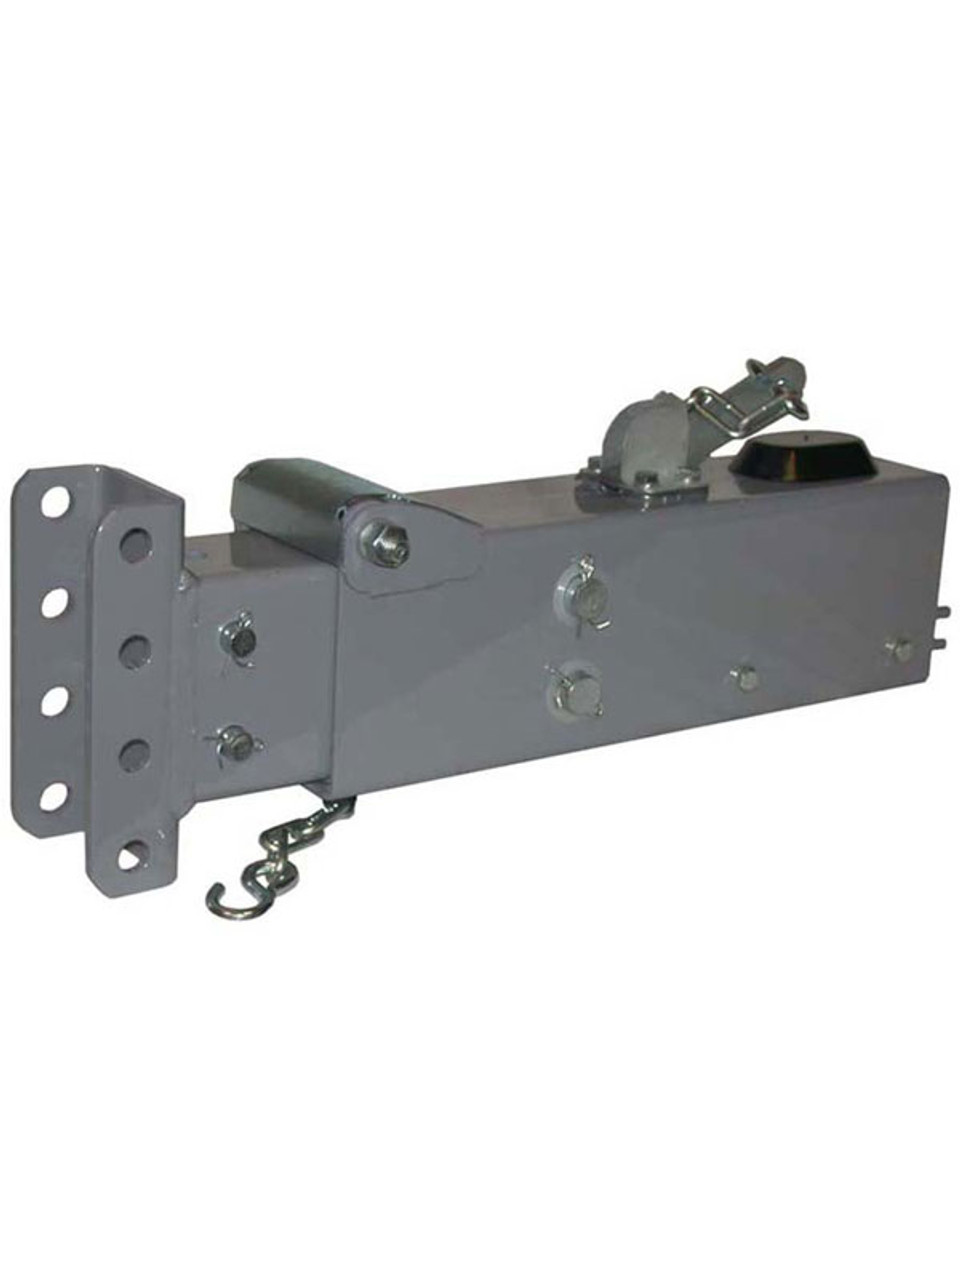 16089 --- Brake Actuator with Channel - 12,500 lb Capacity - Model 10